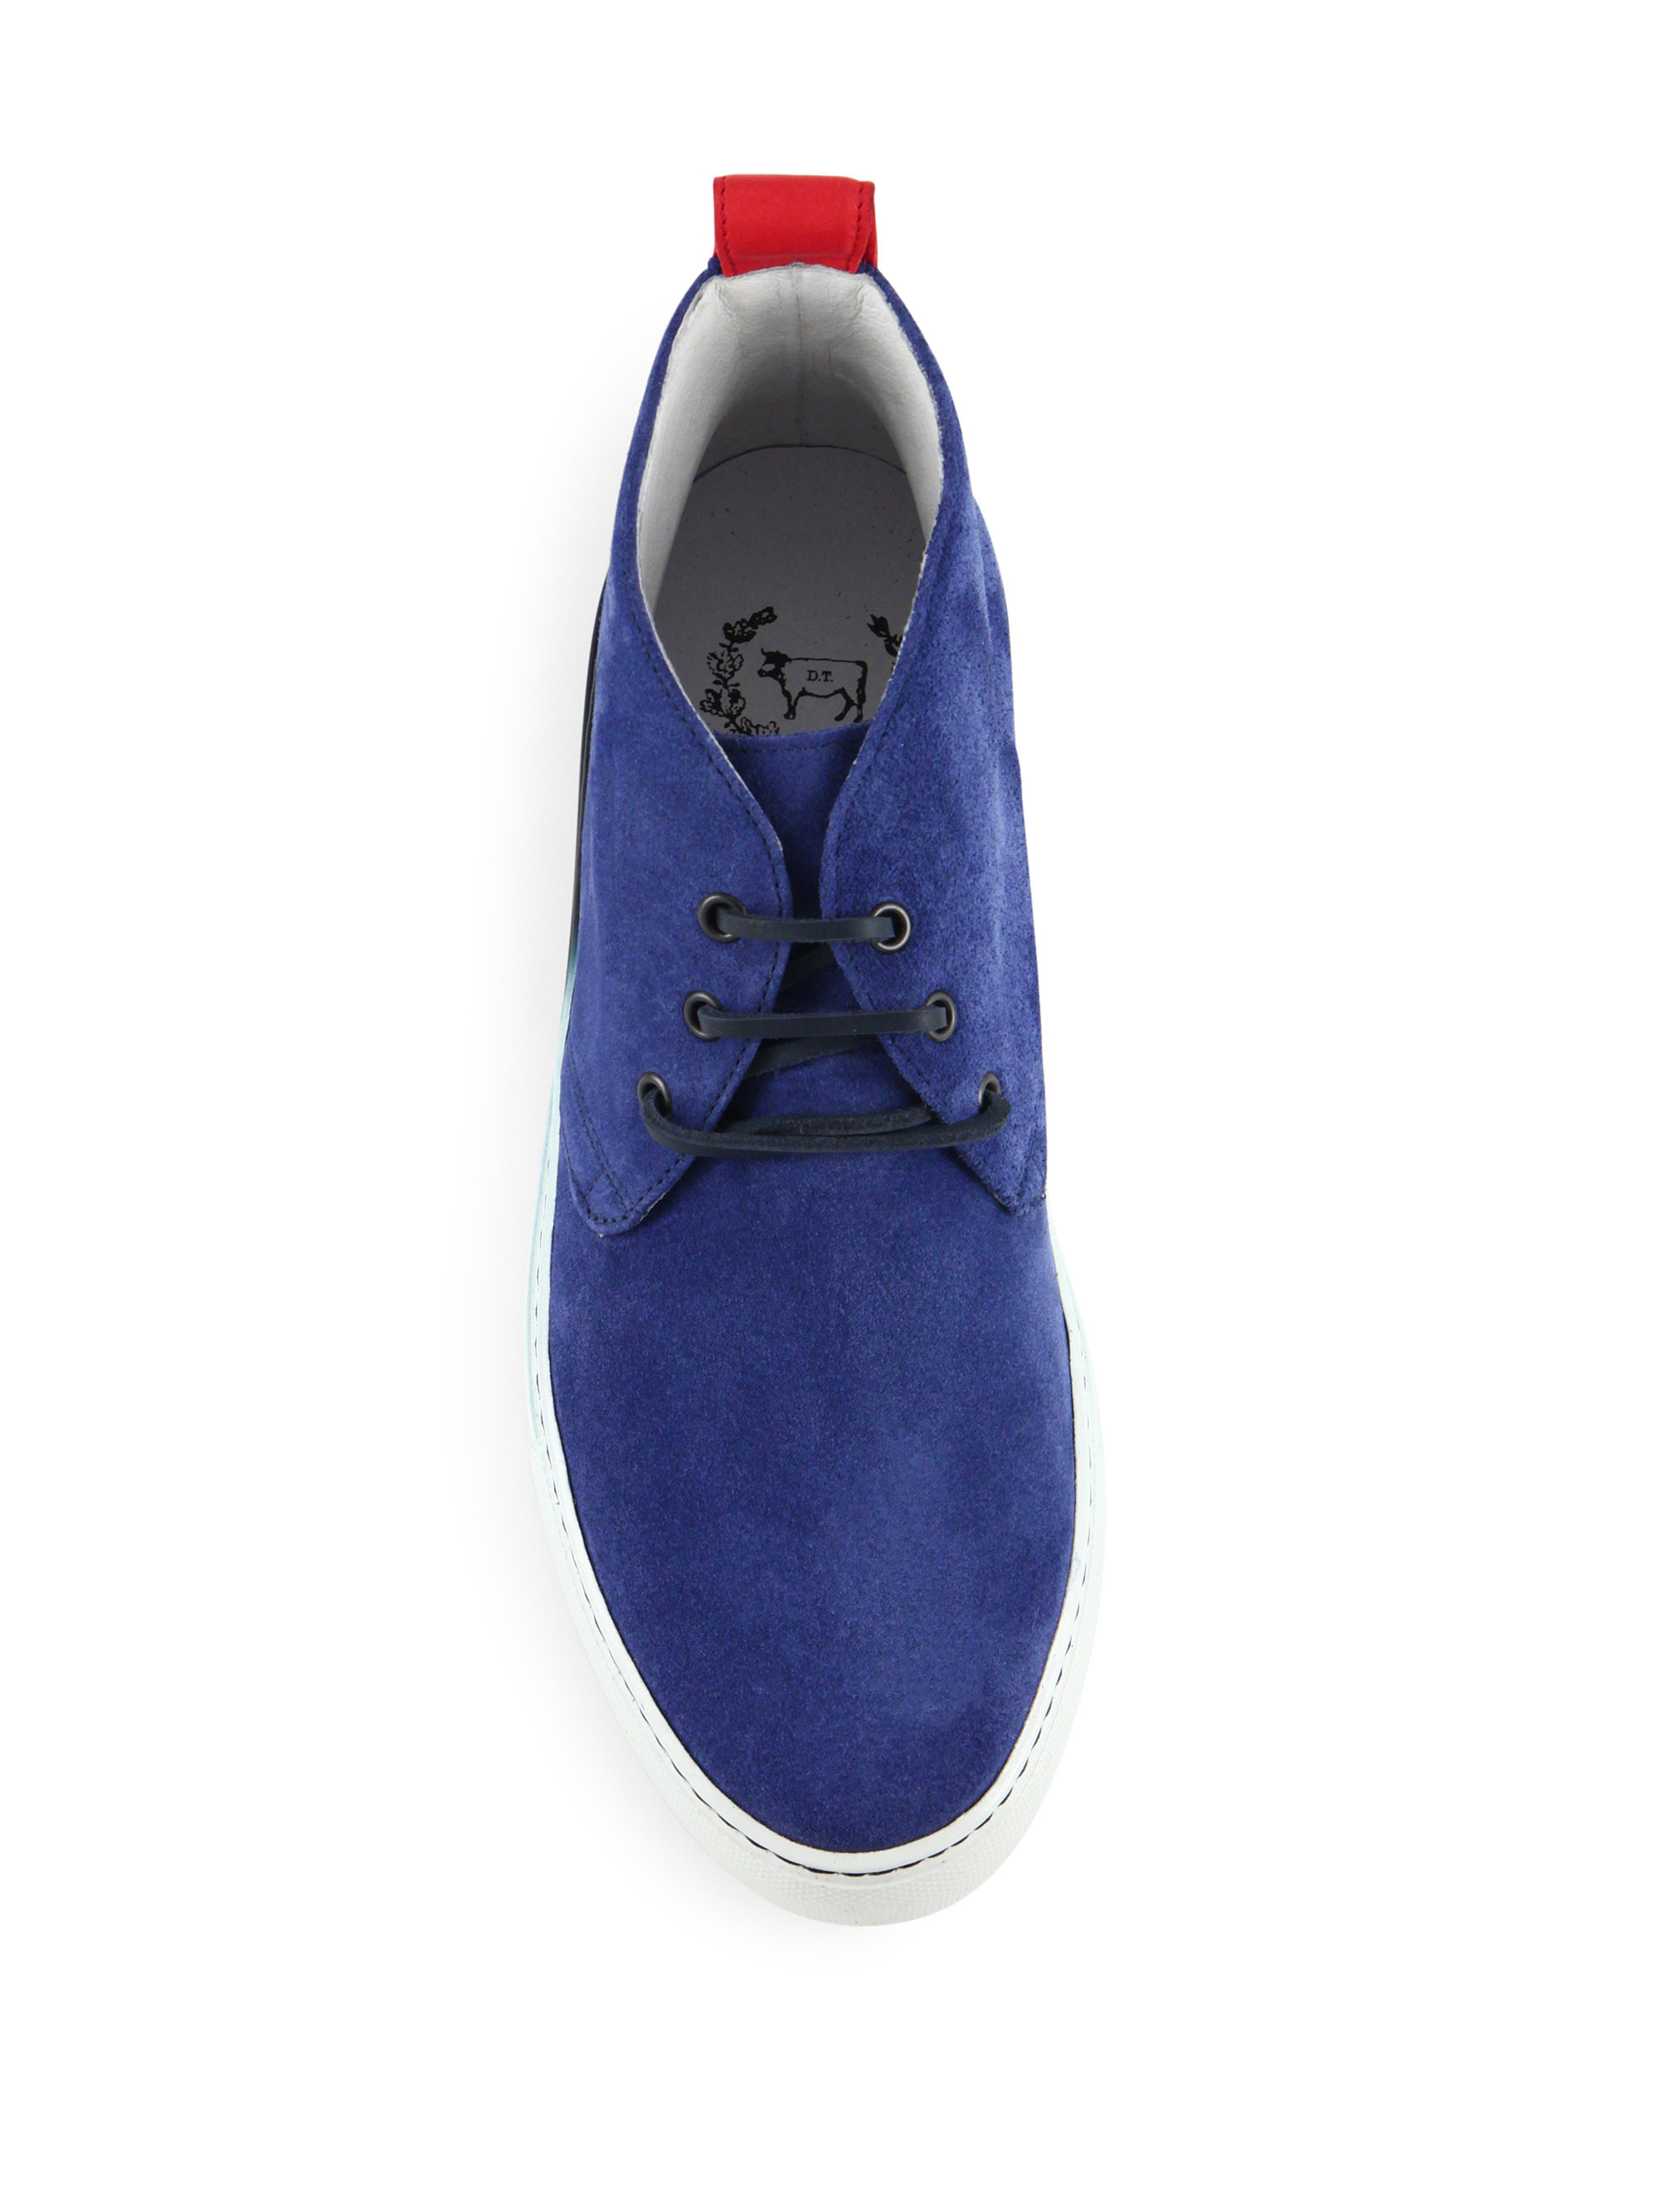 Del Toro Faded Sole Suede Chukka Sneakers In Blue For Men